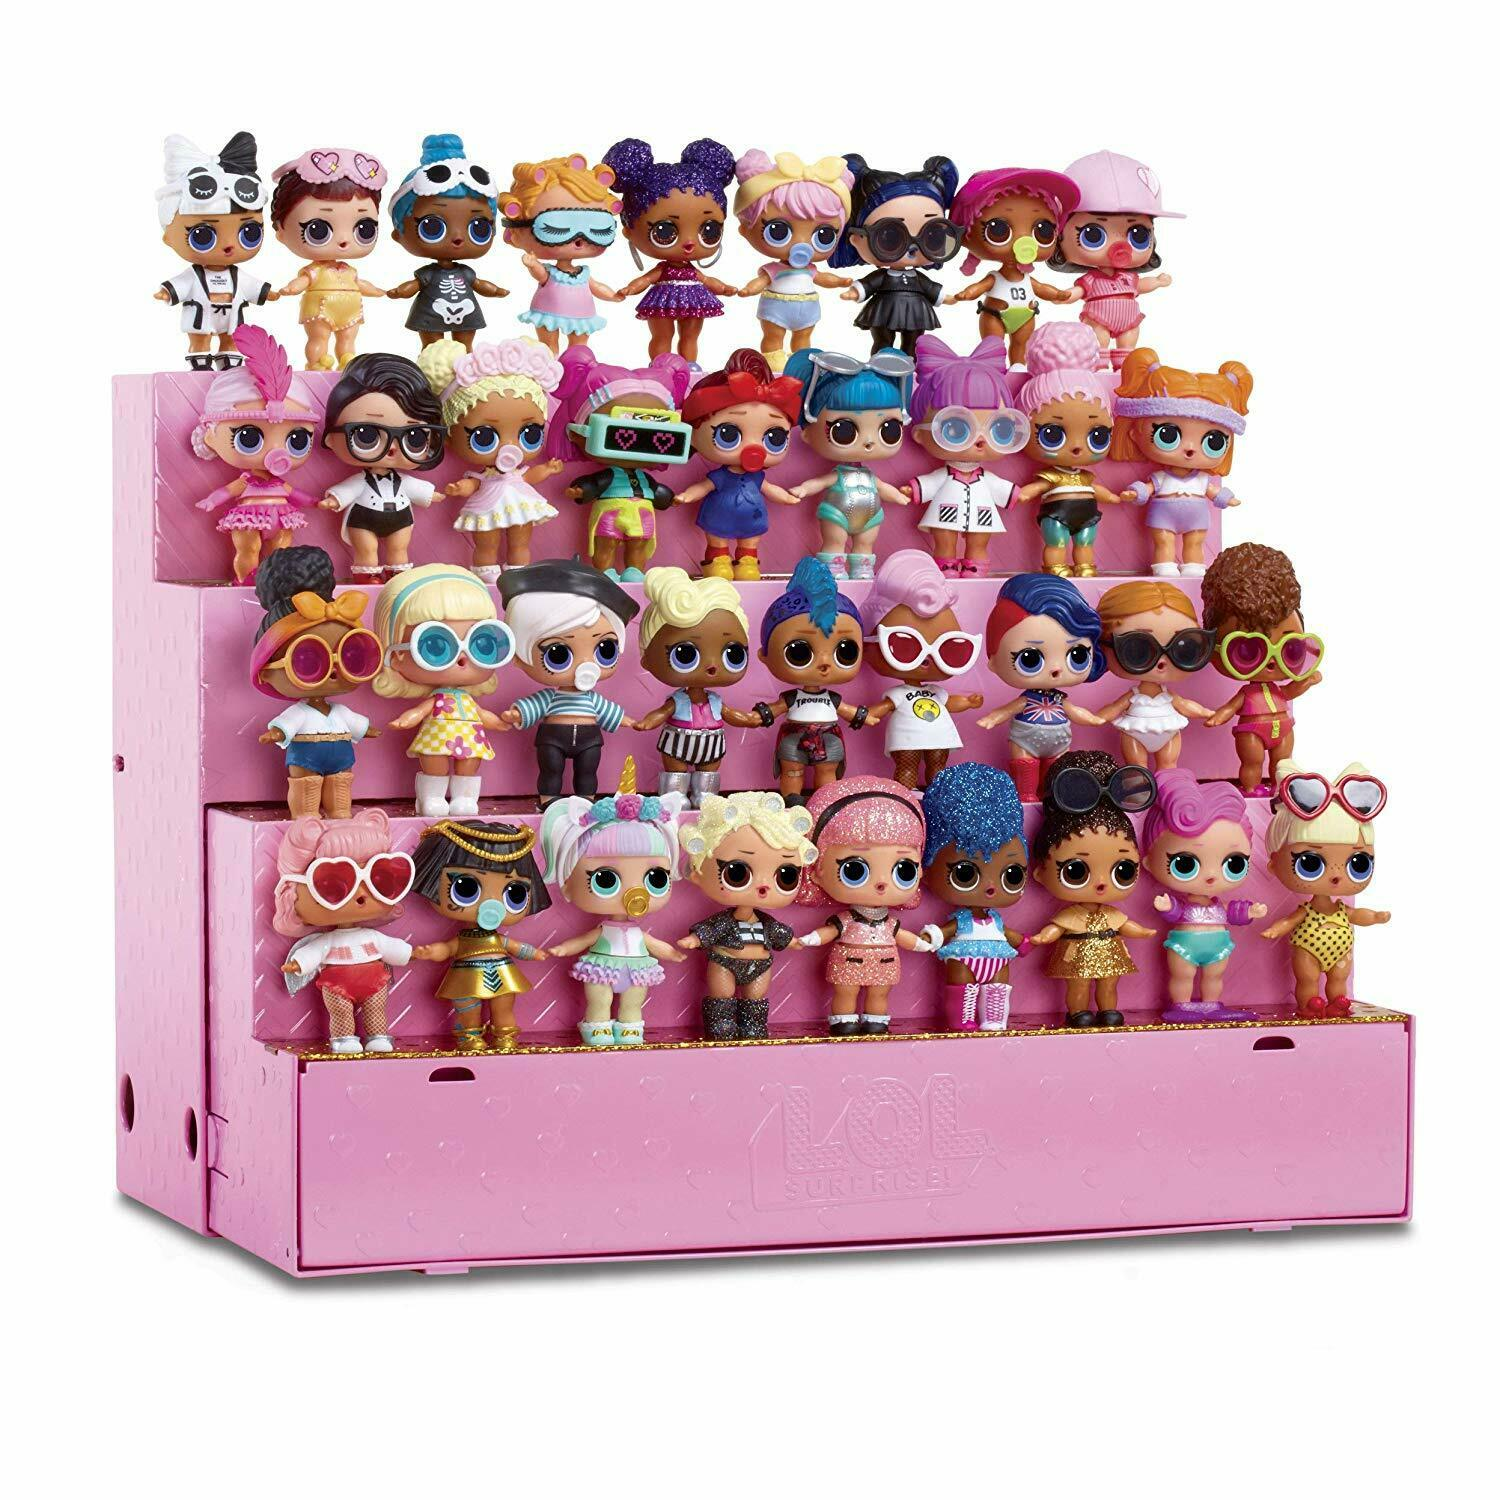 L.O.L. Surprise  Pop-Up Store Doll Doll Doll - Display Case 270